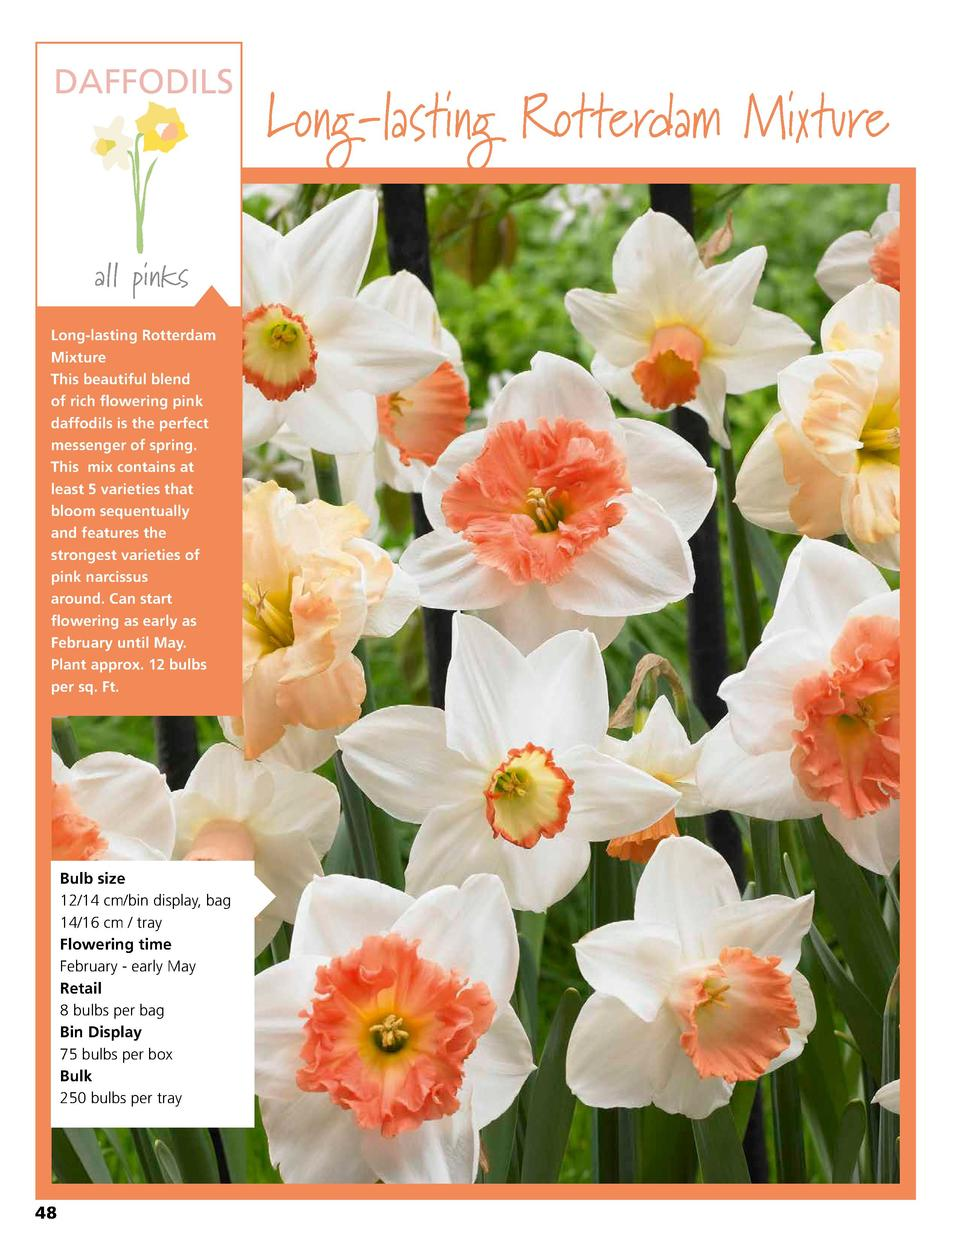 DAFFODILS  all pinks Long-lasting Rotterdam Mixture This beautiful blend of rich flowering pink daffodils is the perfect m...